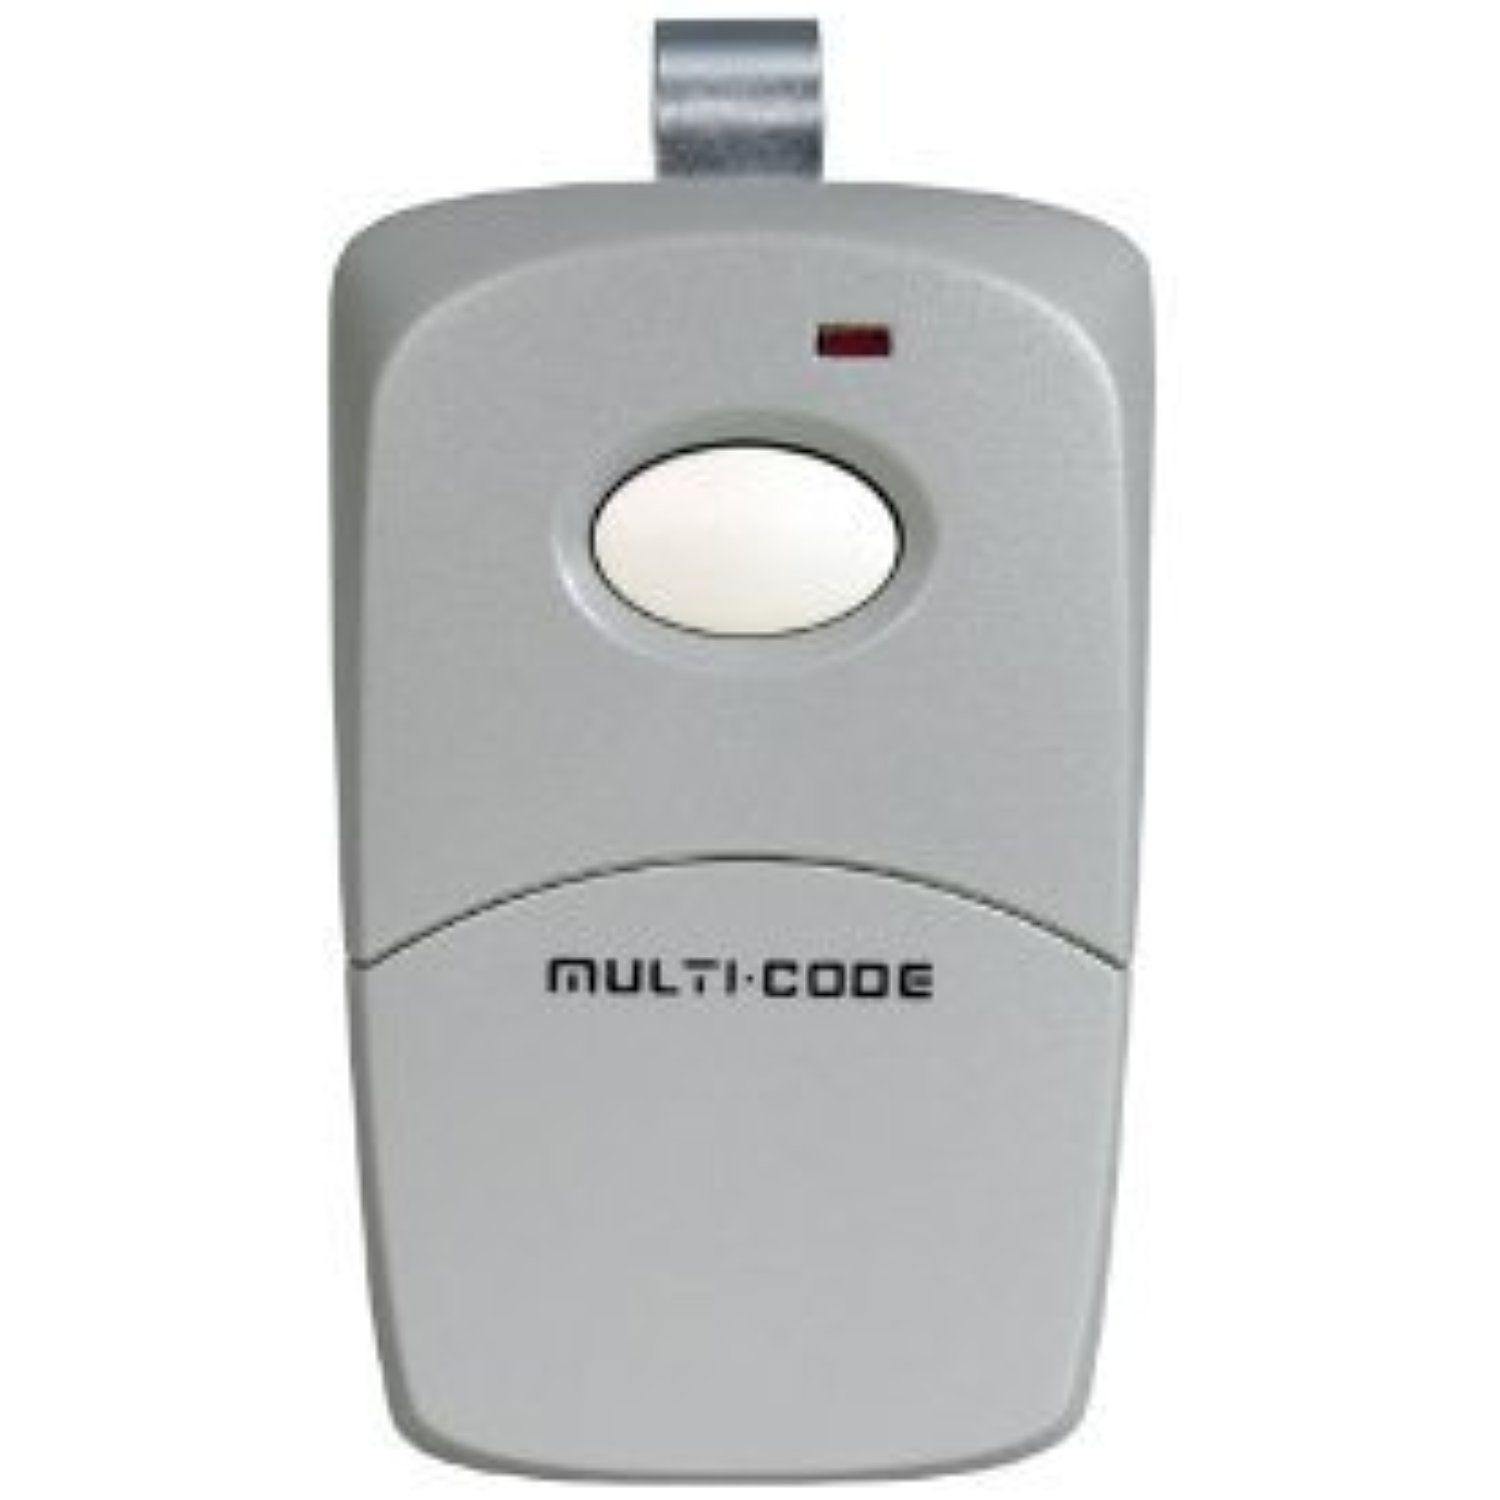 Multi Code3089 3089 Multi Code Multicode 308911 Oem Linear Mcs308911 300mhz 1 Button Remote By Linear Research Find Out More Coding Garage Door Opener Garage Door Remote